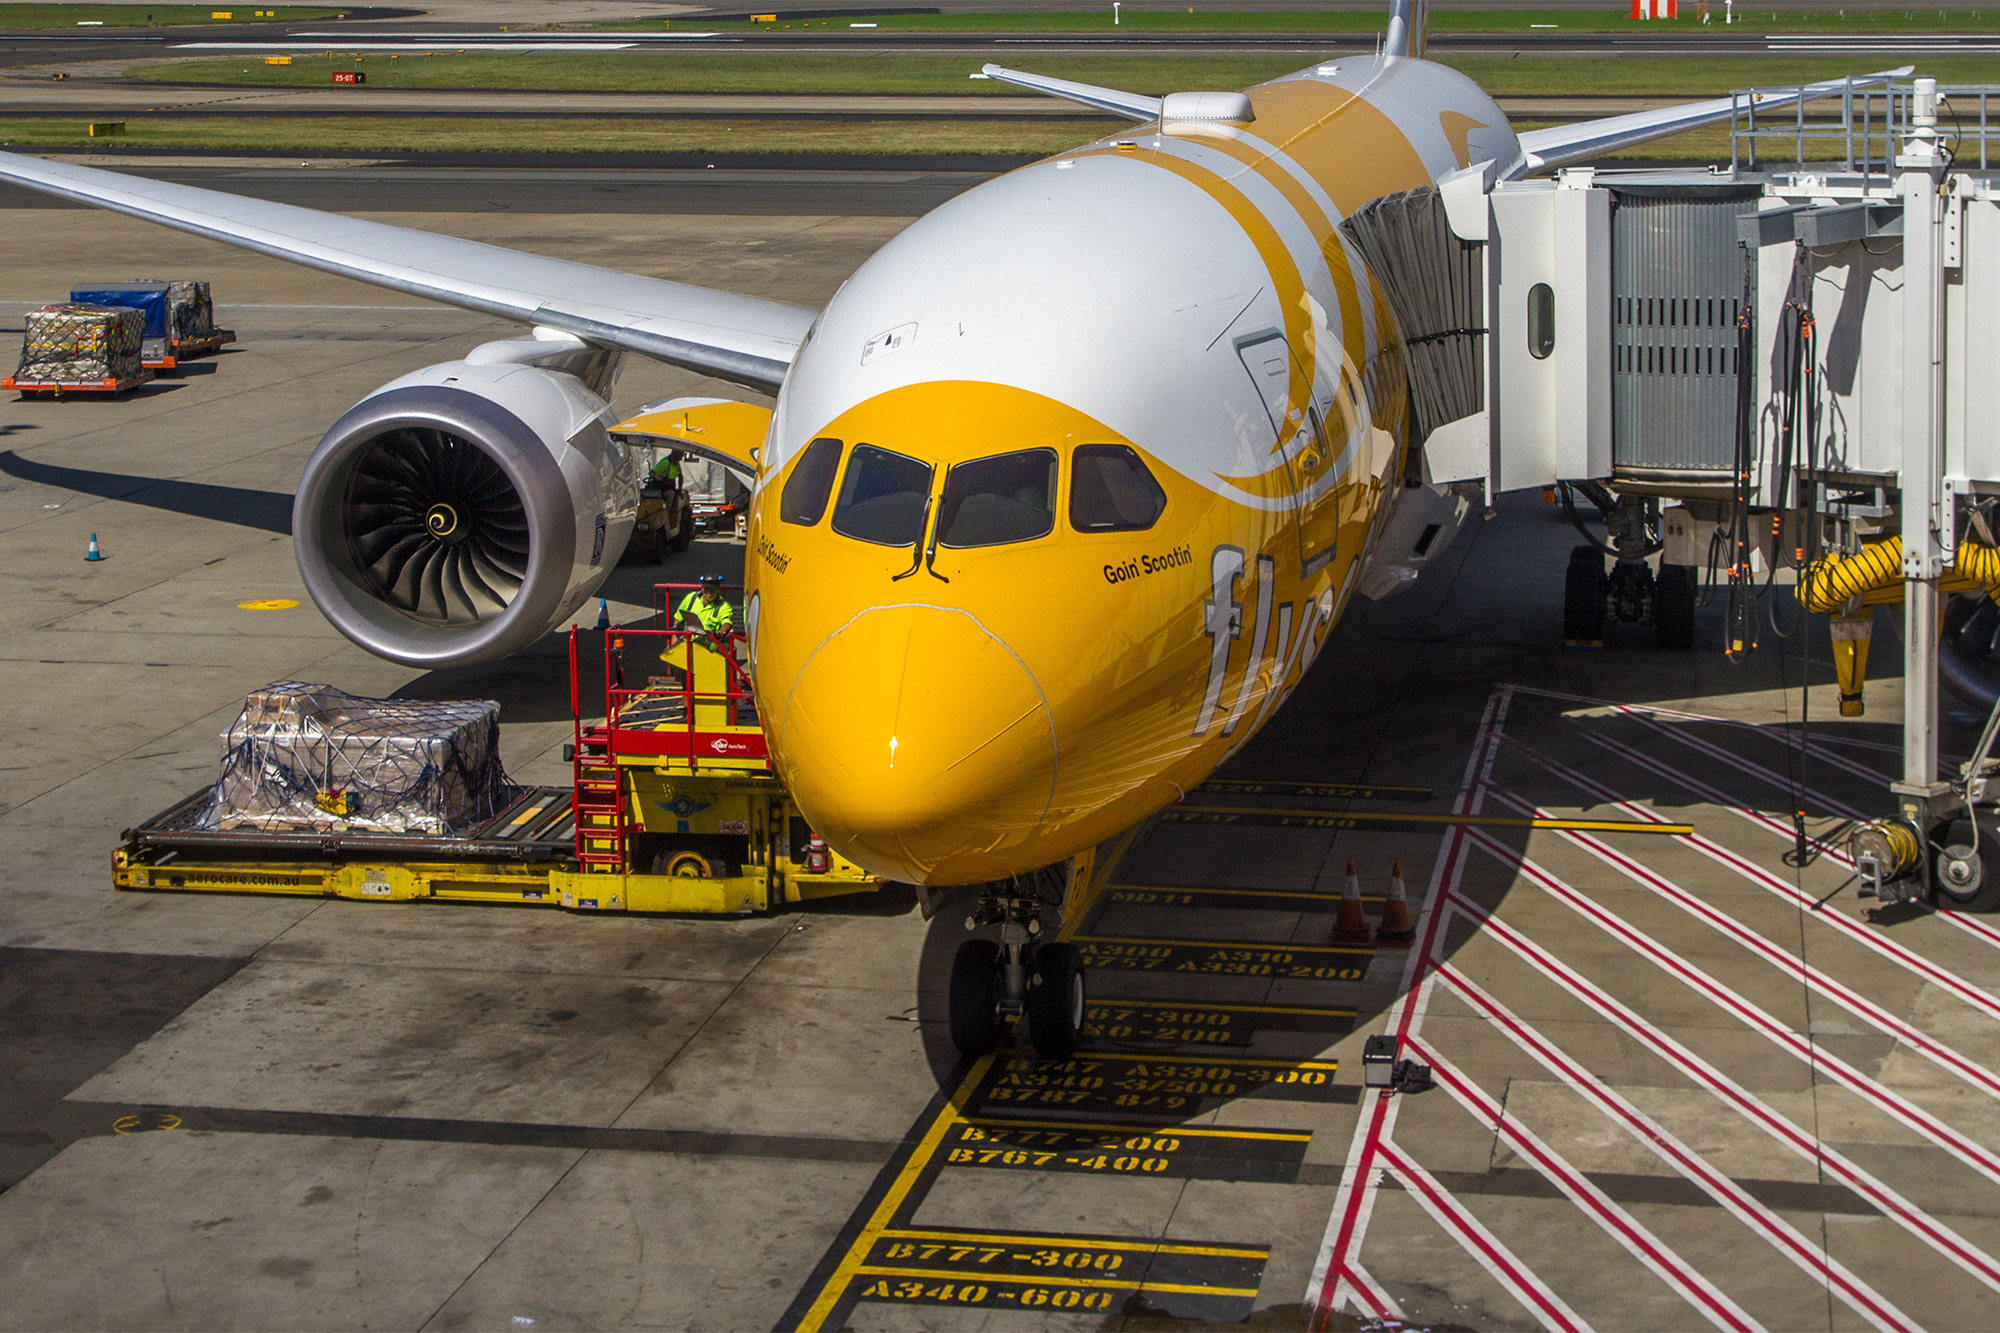 Scoot 787 at Gate (Maksym Kozlenko)